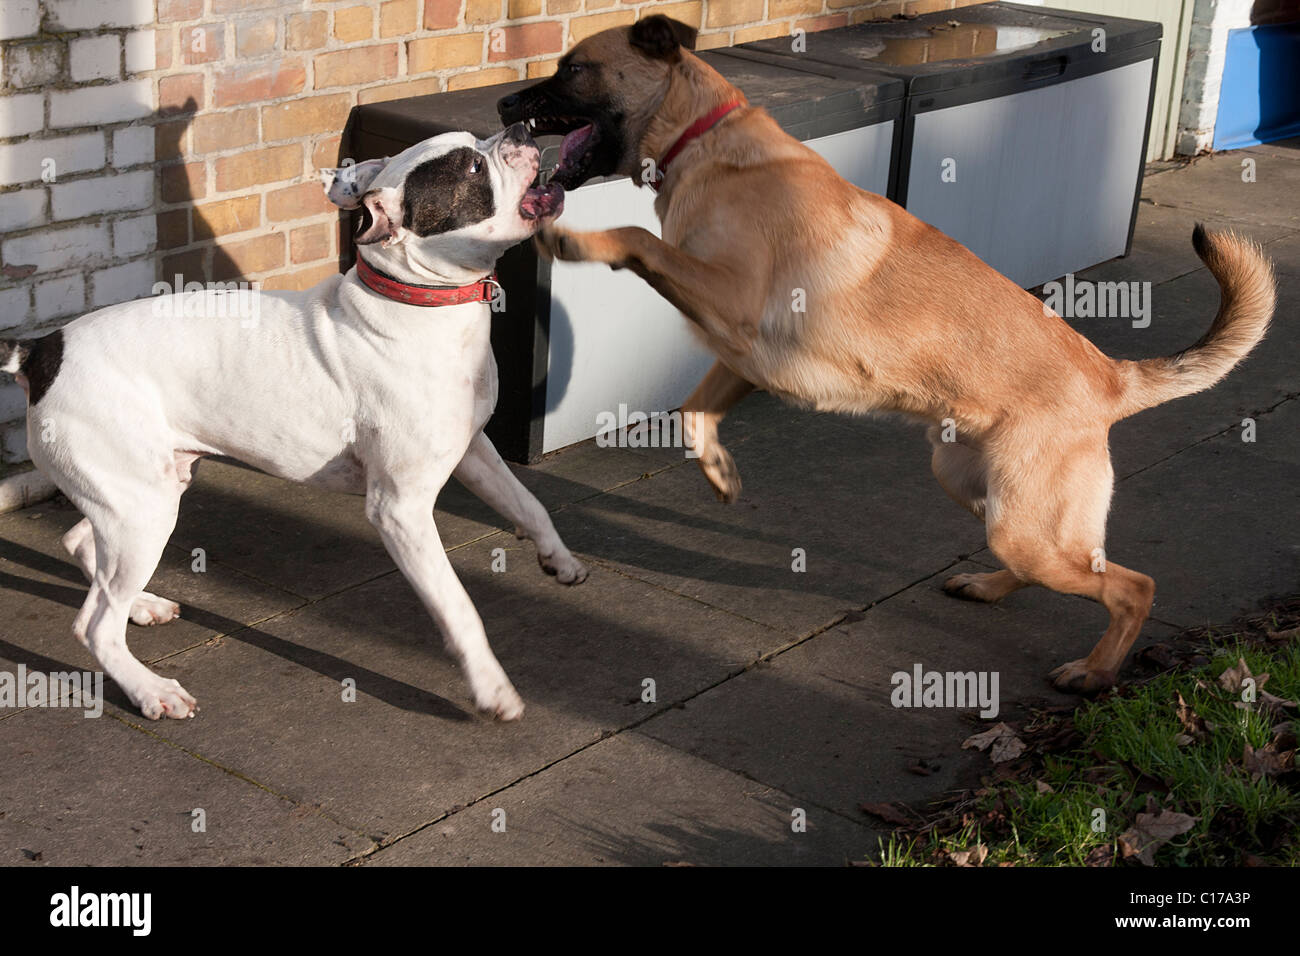 two dogs playfighting - Stock Image